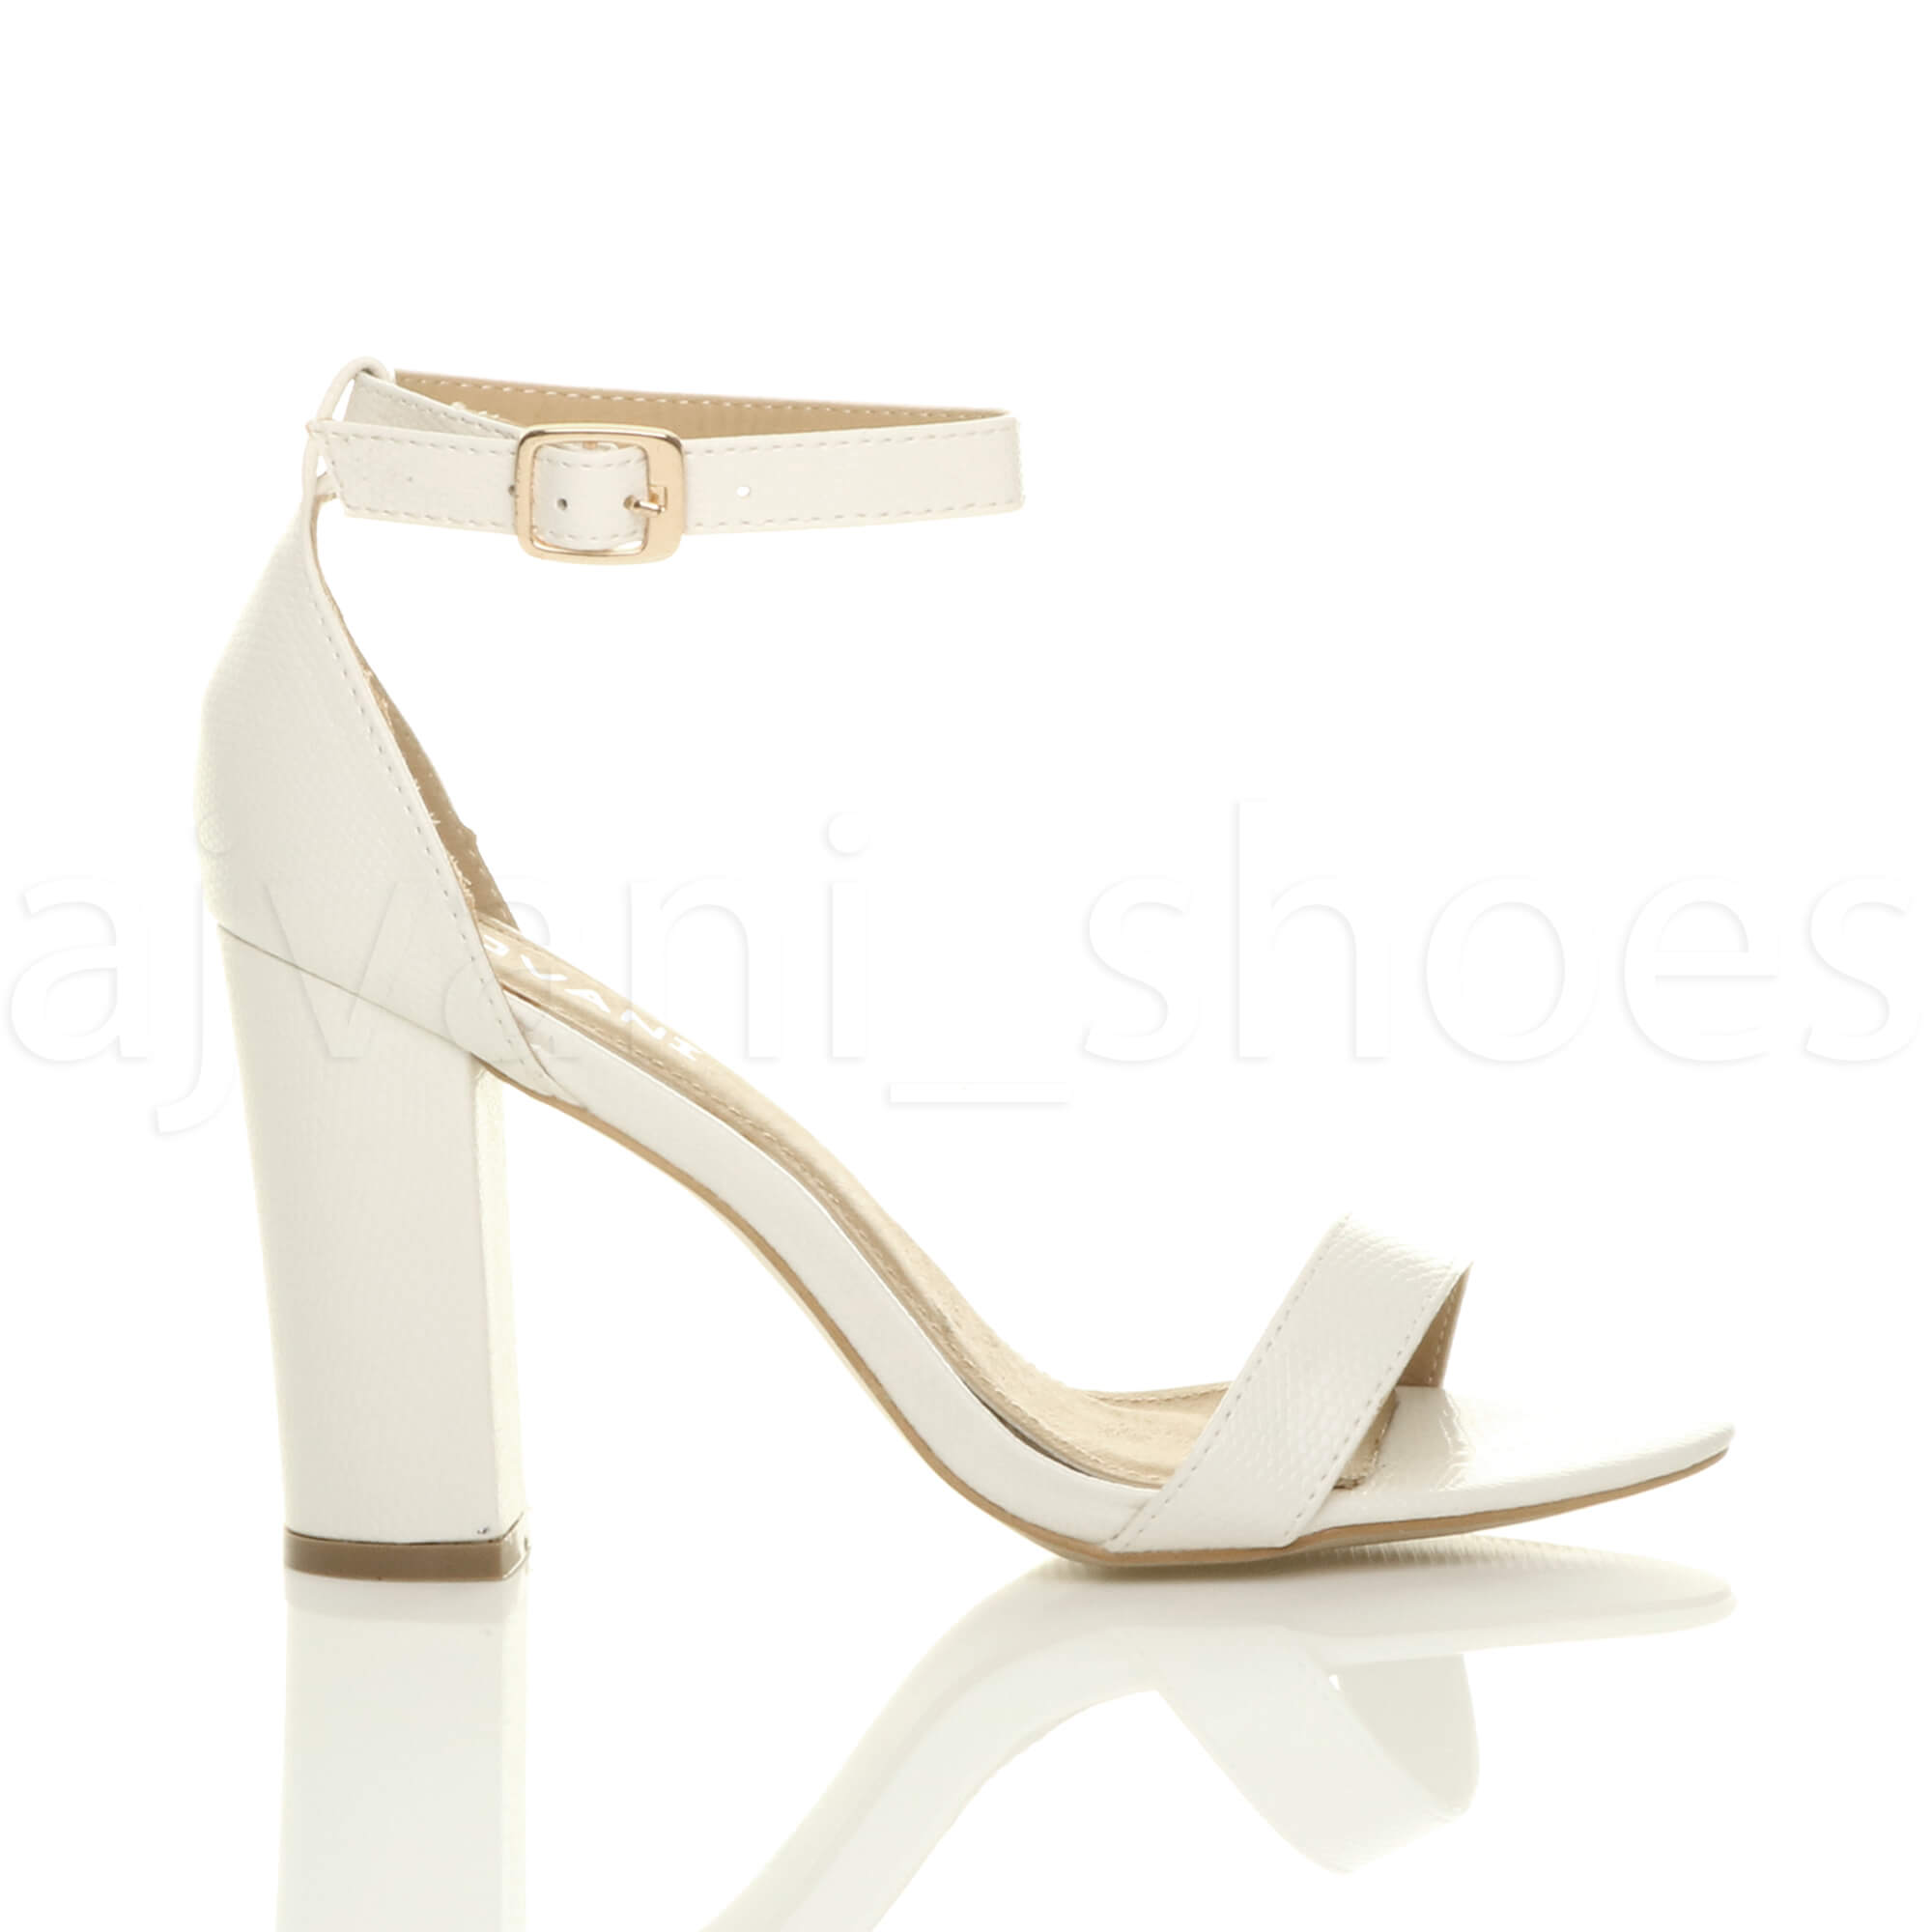 WOMENS-LADIES-BLOCK-HIGH-HEEL-ANKLE-STRAP-PEEP-TOE-STRAPPY-SANDALS-SHOES-SIZE thumbnail 161